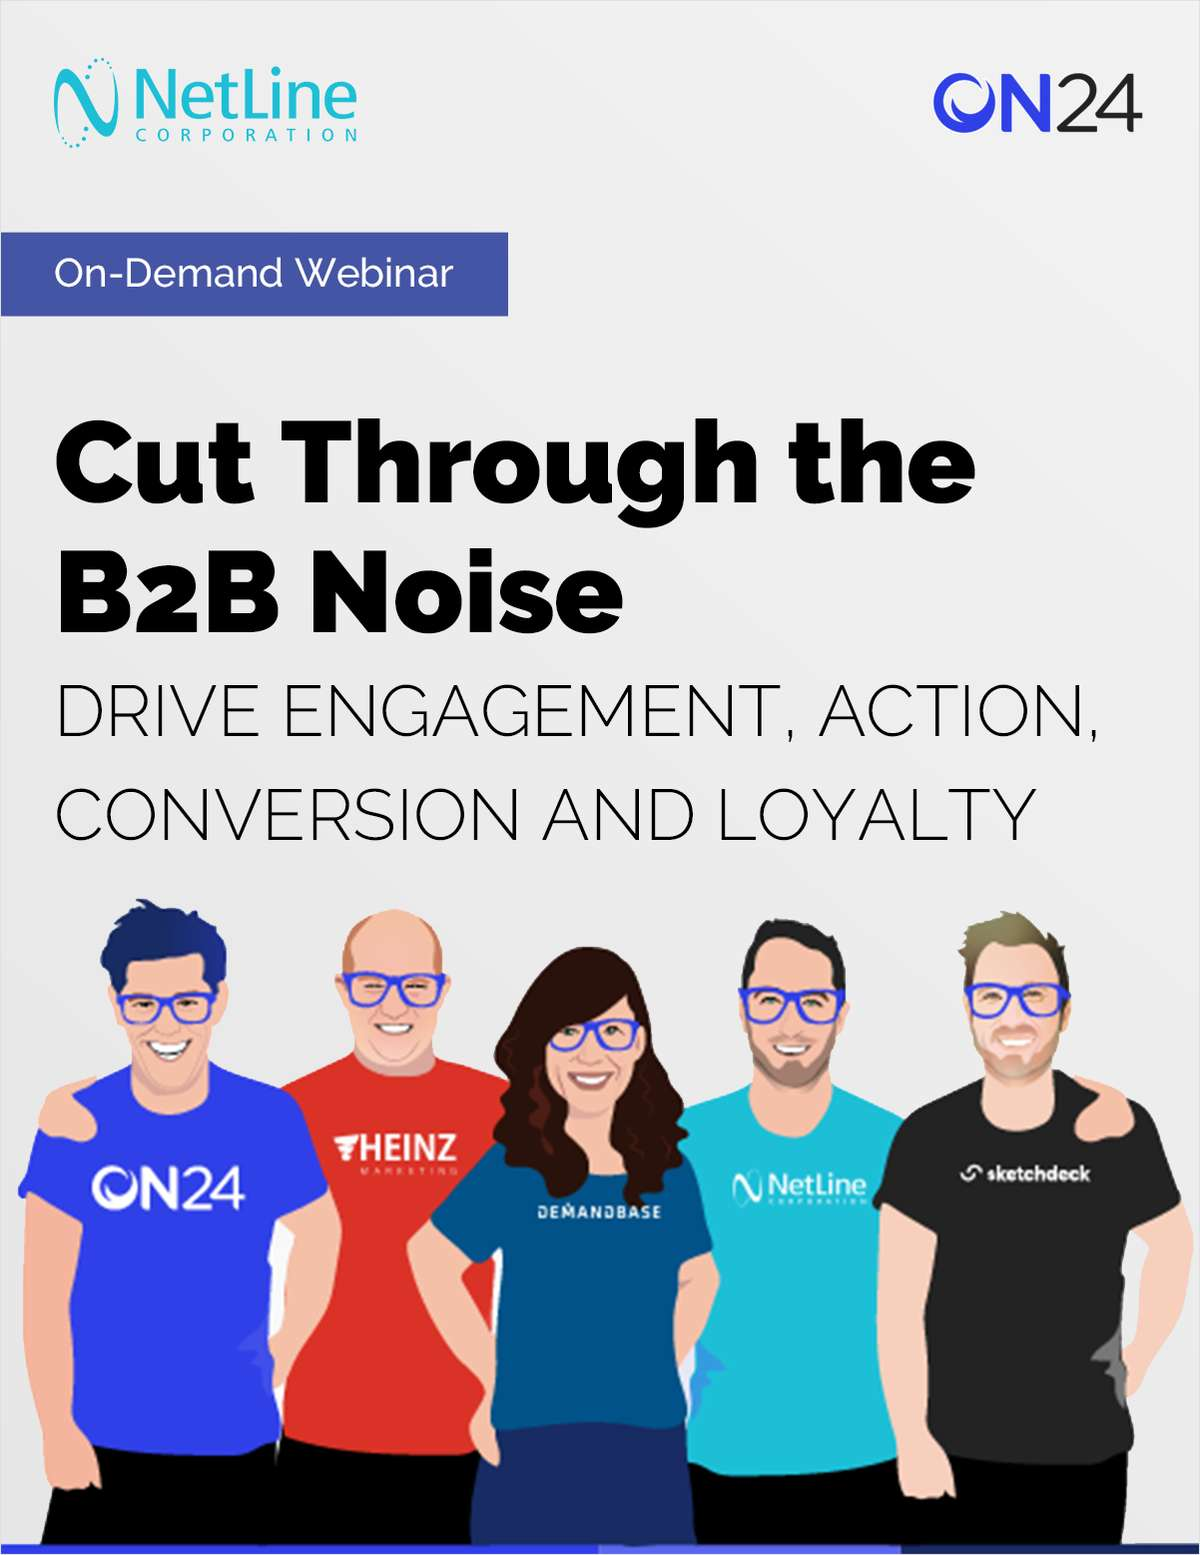 Cut Through the B2B Noise: Drive Engagement, Action, Conversion, and Loyalty